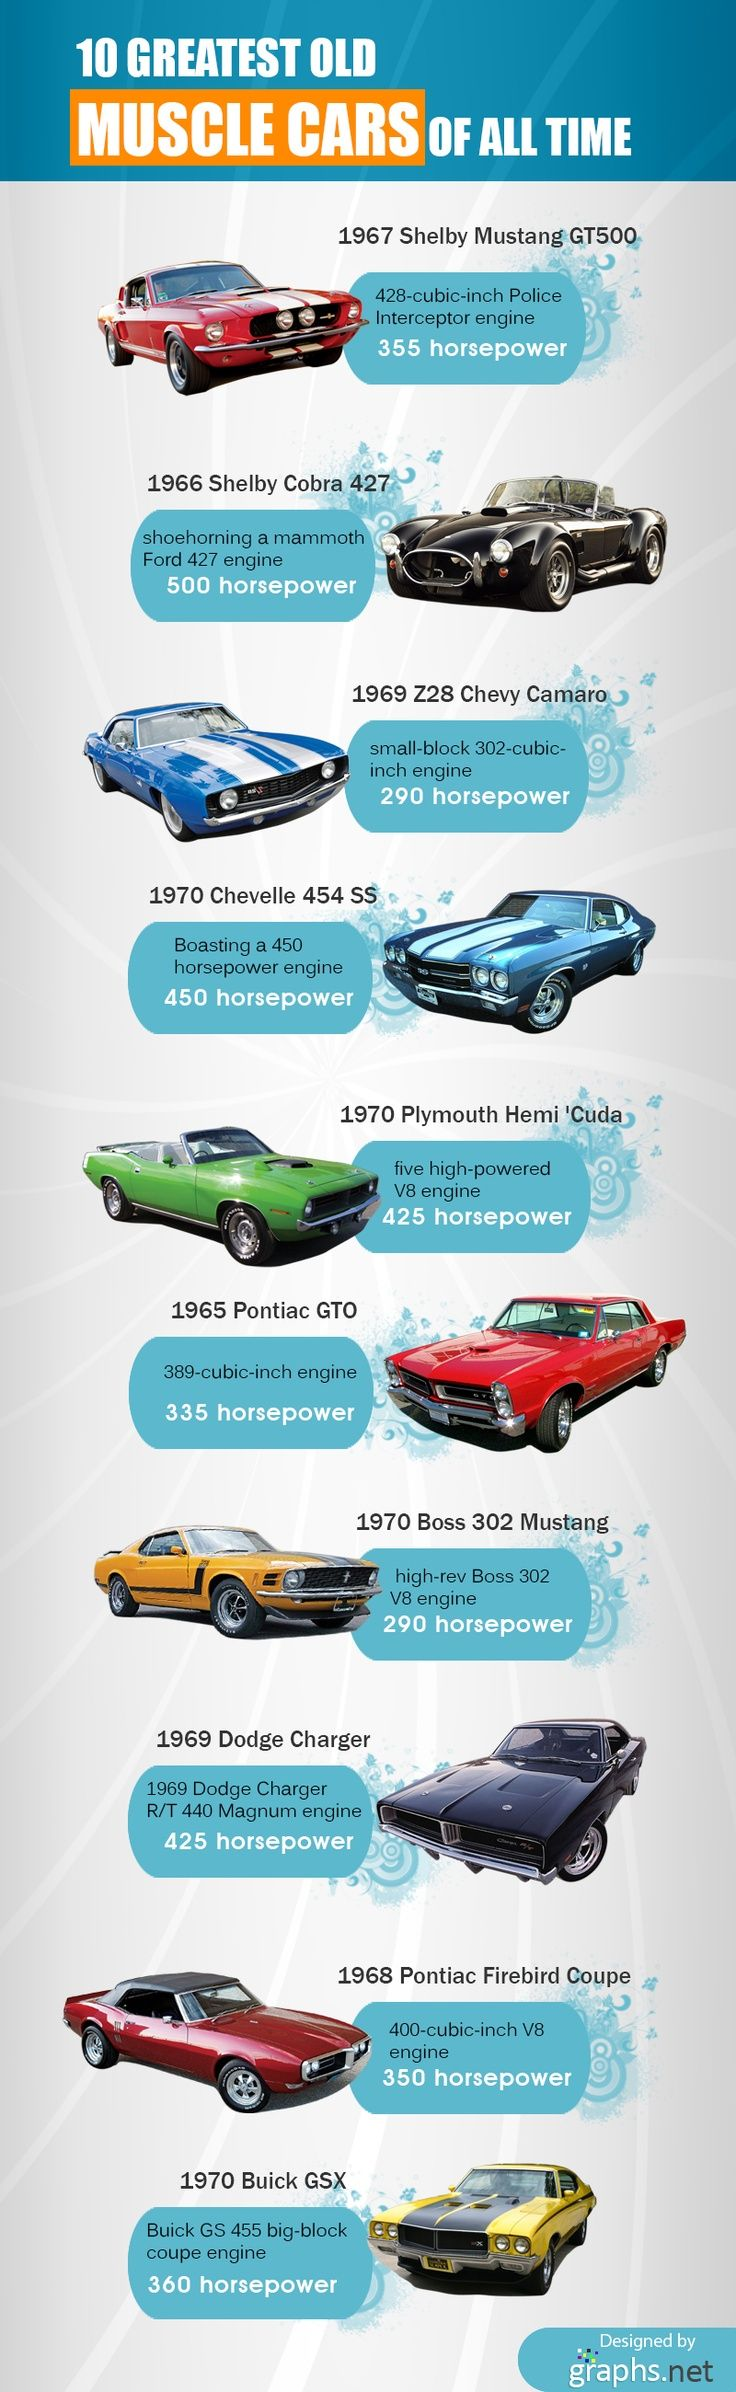 JP Logistics Car Transport -  Got one?  Ship it with http://LGMSports.com 10 Greatest Old Muscle Cars of All Time